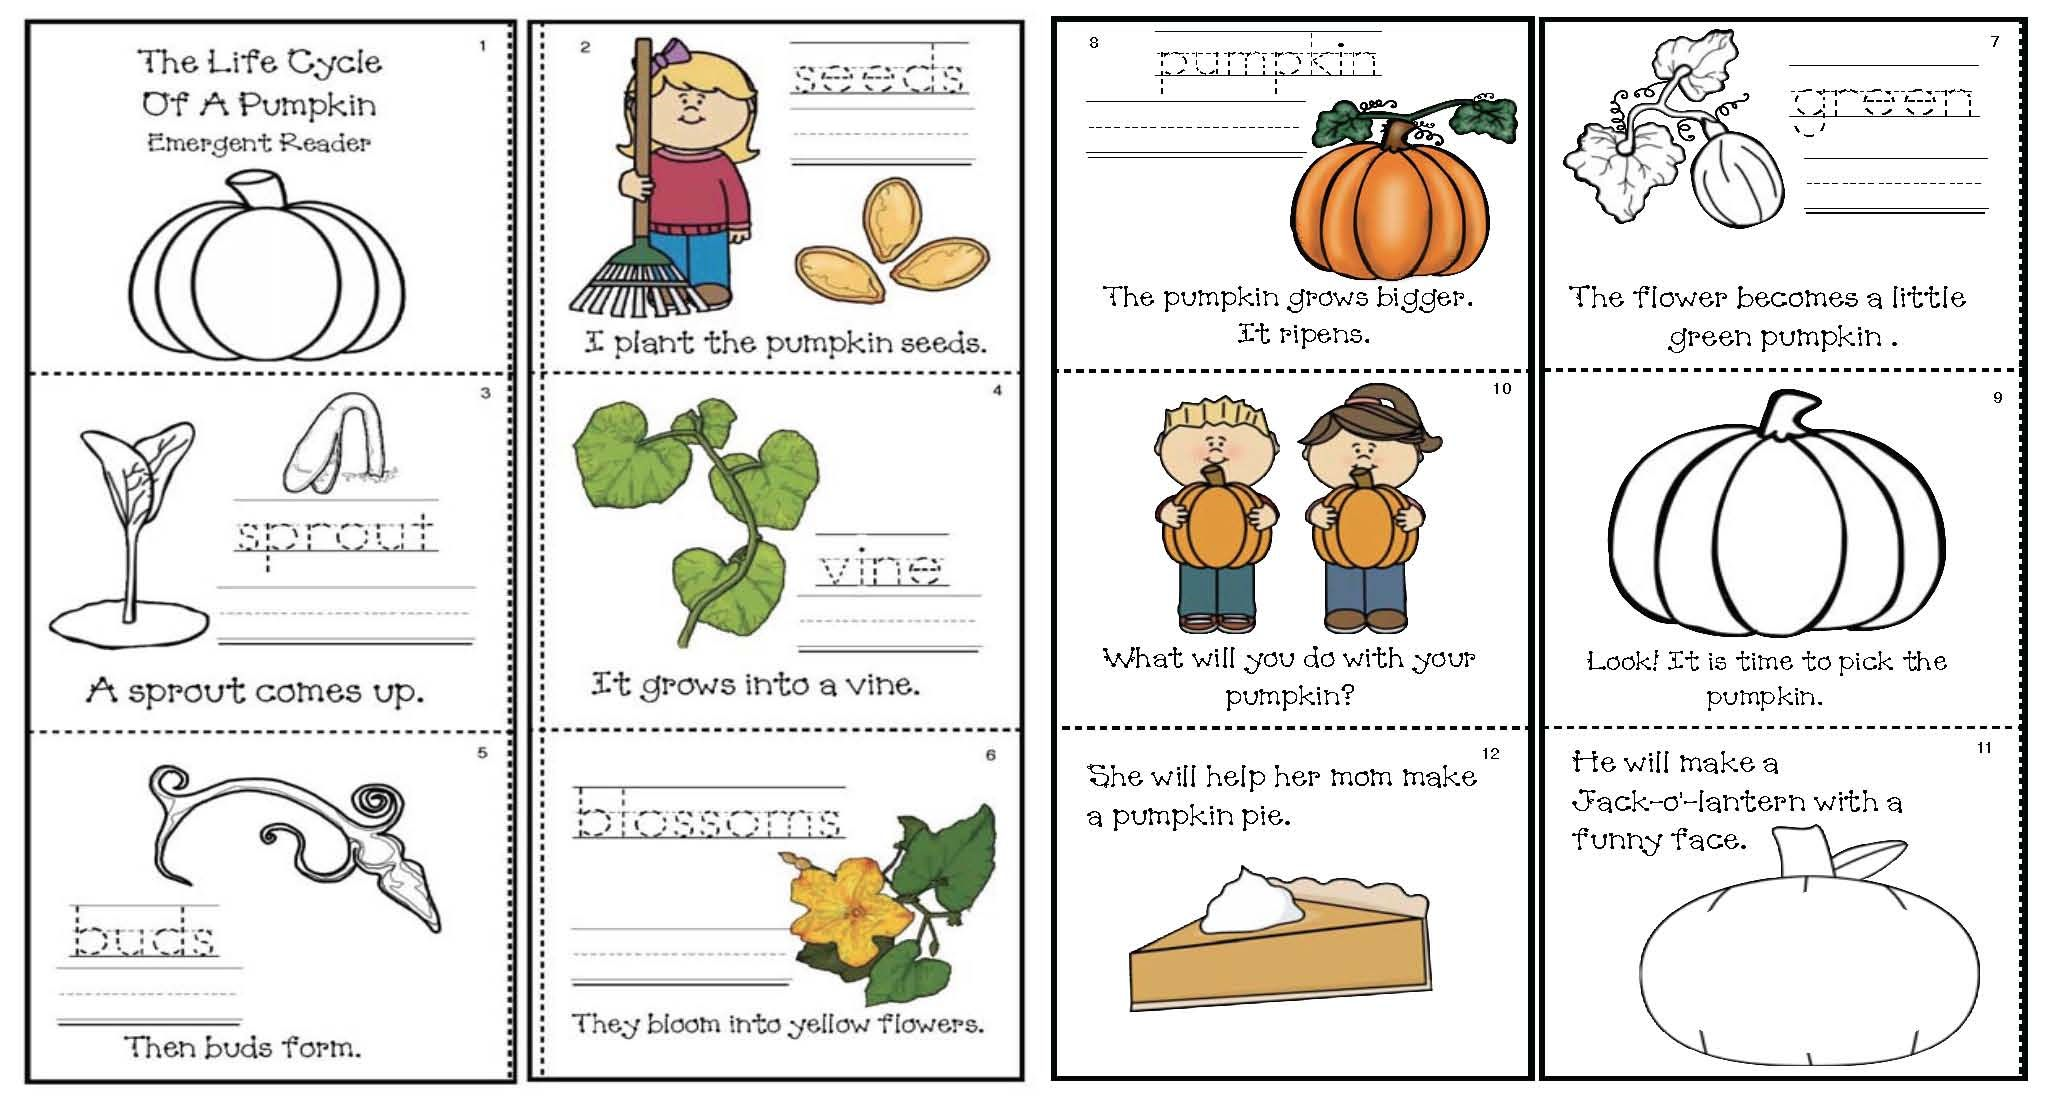 Life Cycle Of A Pumpkin Activities Emergent Reader And Crafts [ 1100 x 2071 Pixel ]